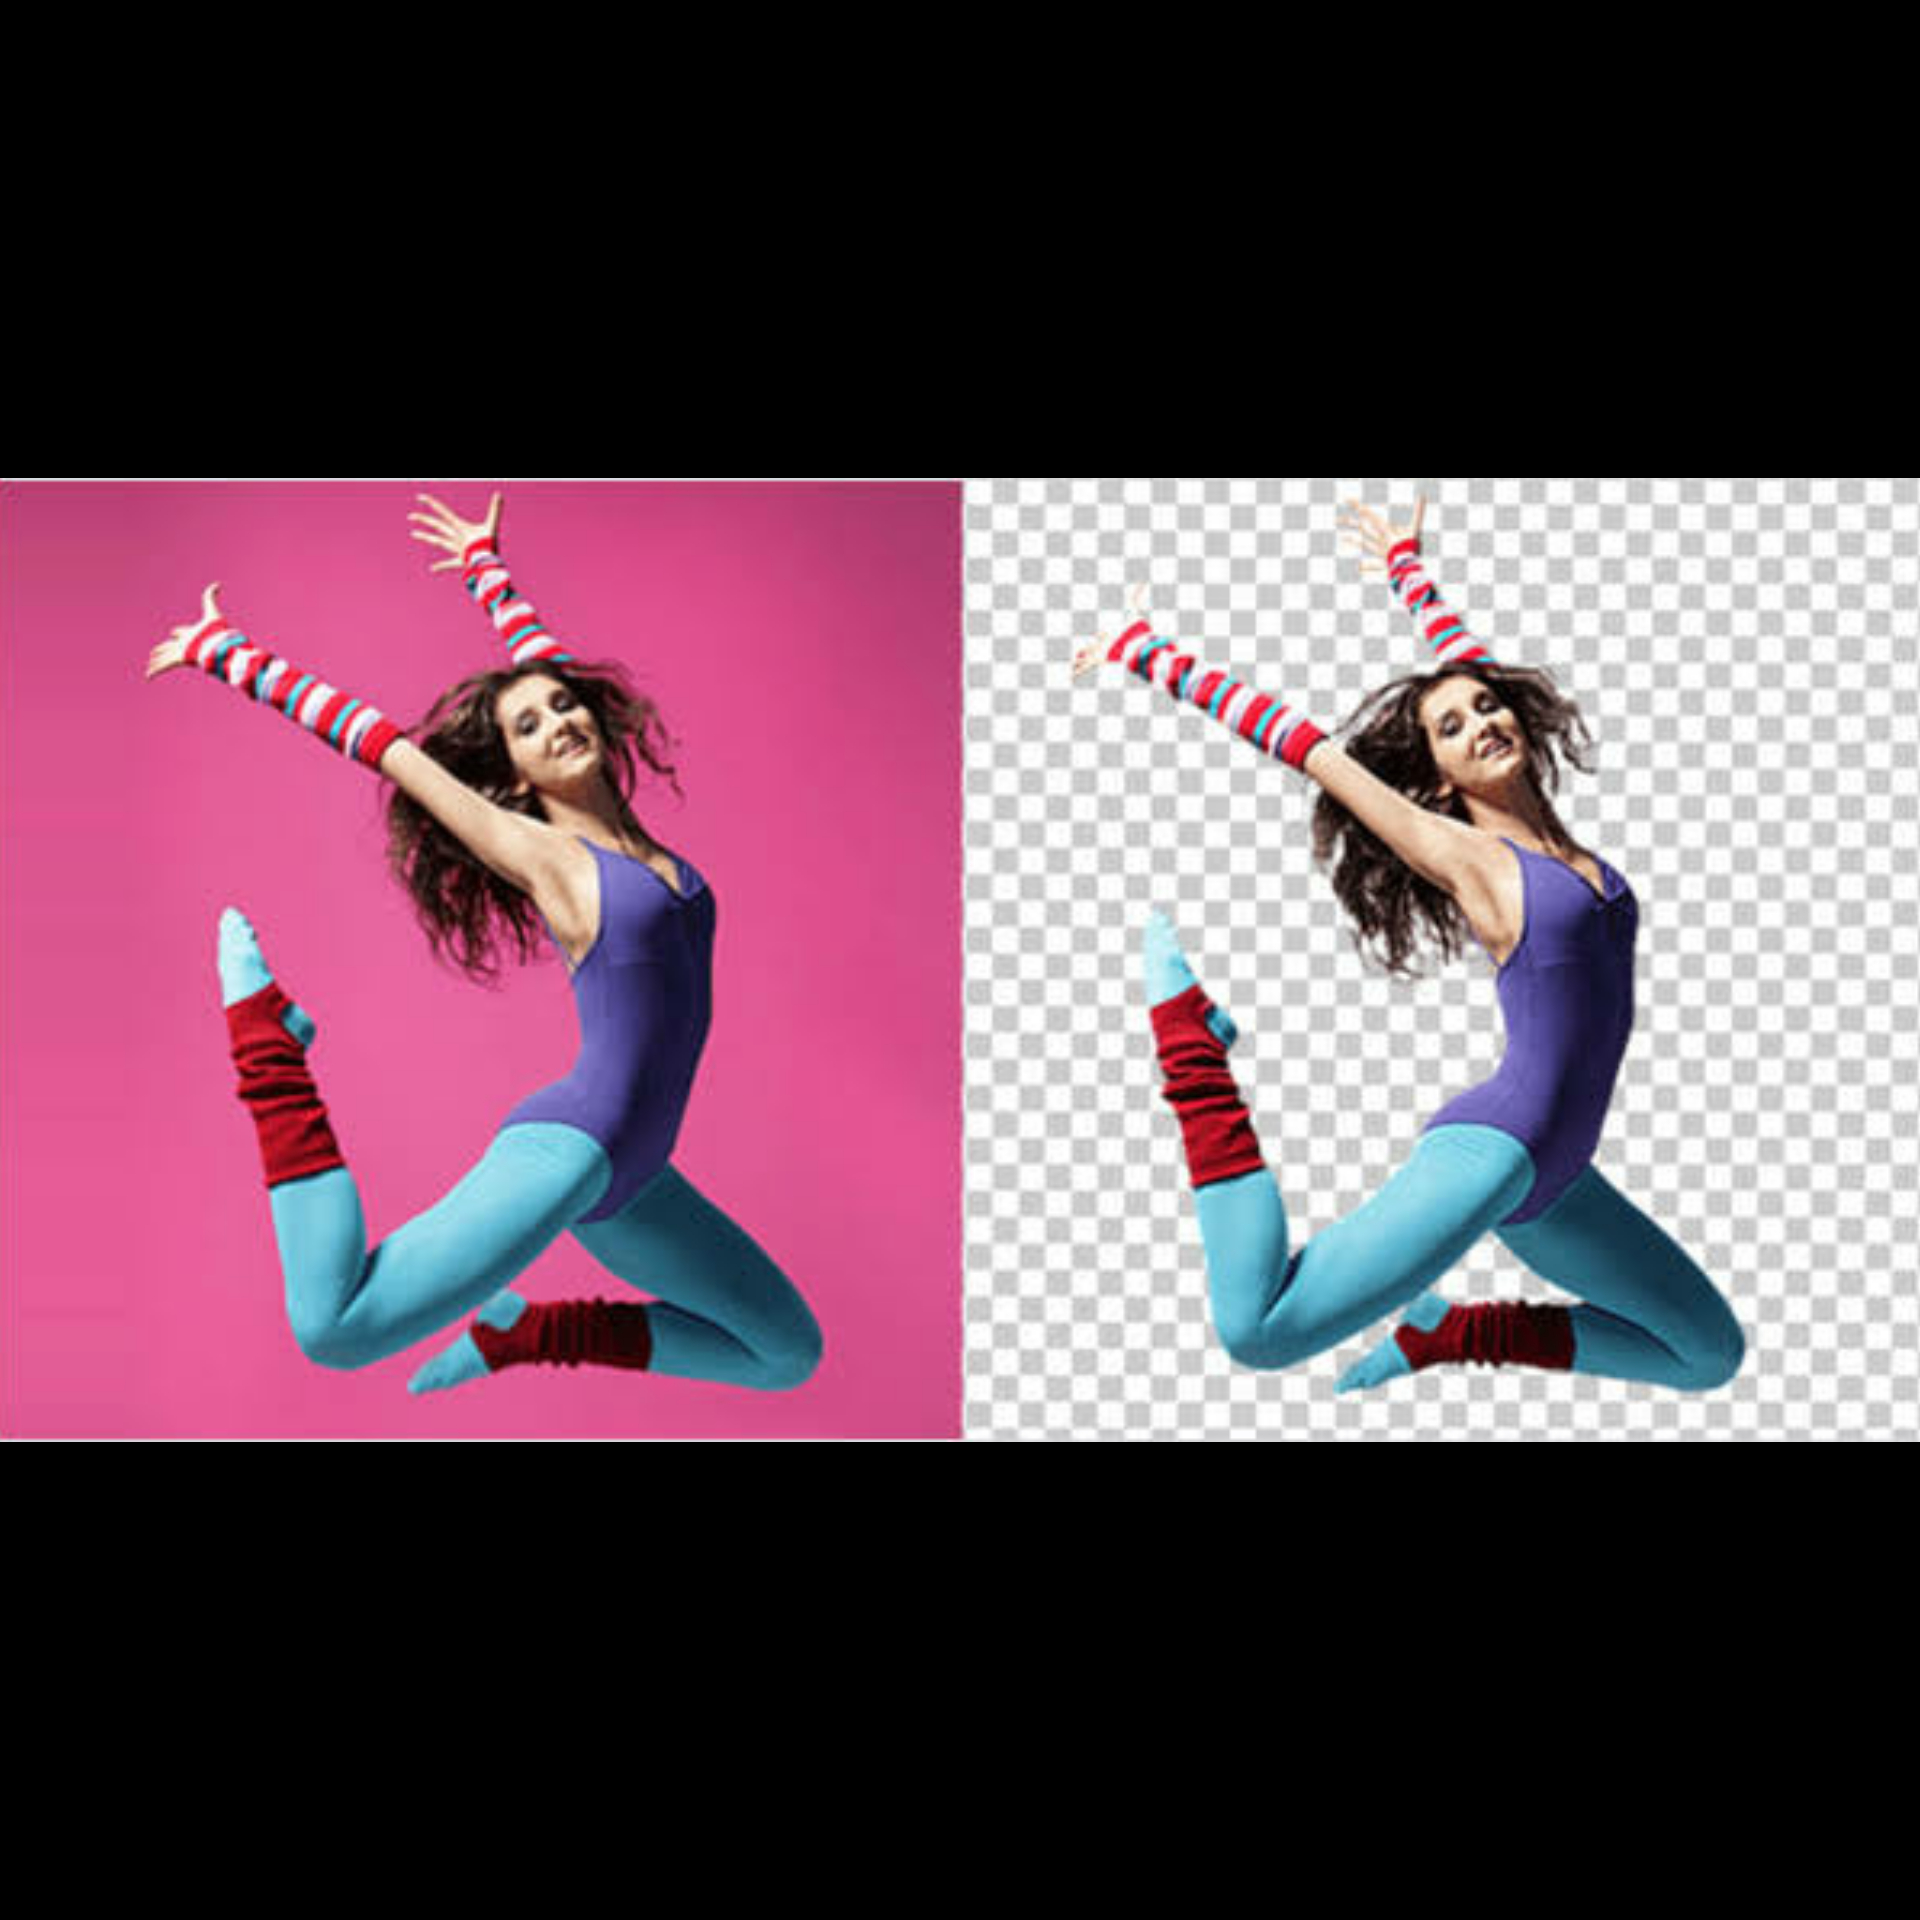 We are providing picture background removing /Changing services